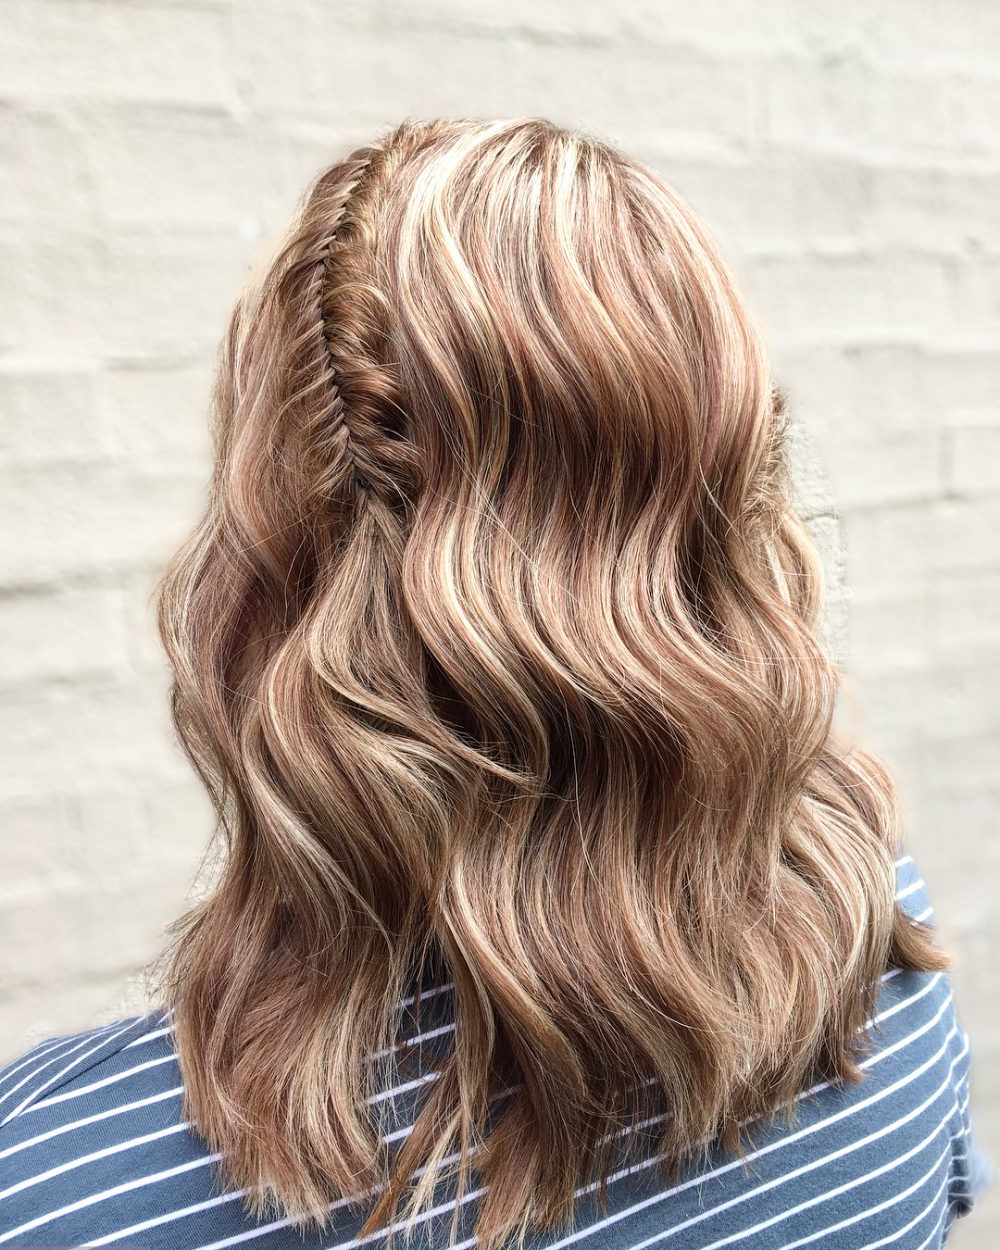 Prom Hairstyles For Medium Length Hair – Pictures And How To's With 2018 Prom Medium Hairstyles (View 17 of 20)